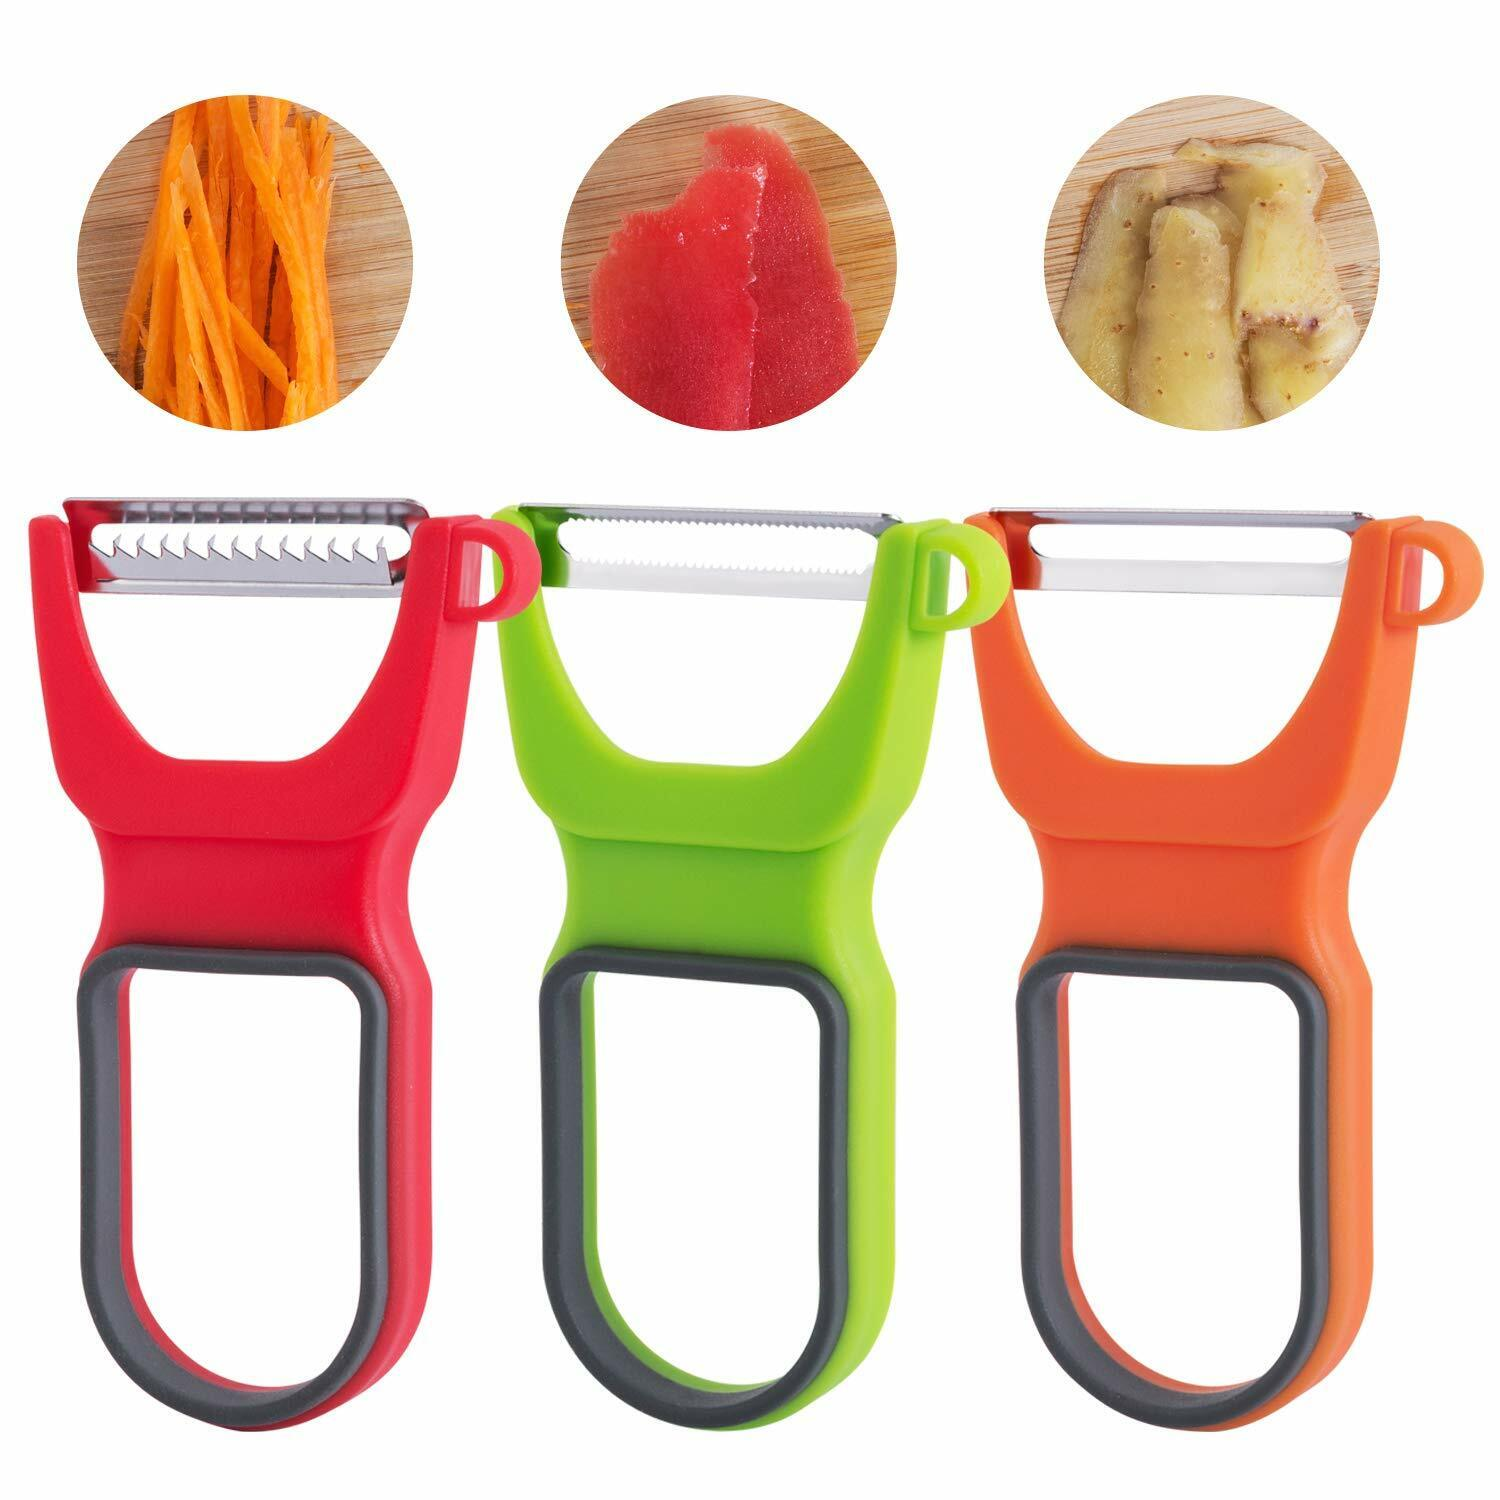 Magic Trio Peelers Slicer Shredder Peeler Trio Multifunction Vegetable Fruit US Home & Garden